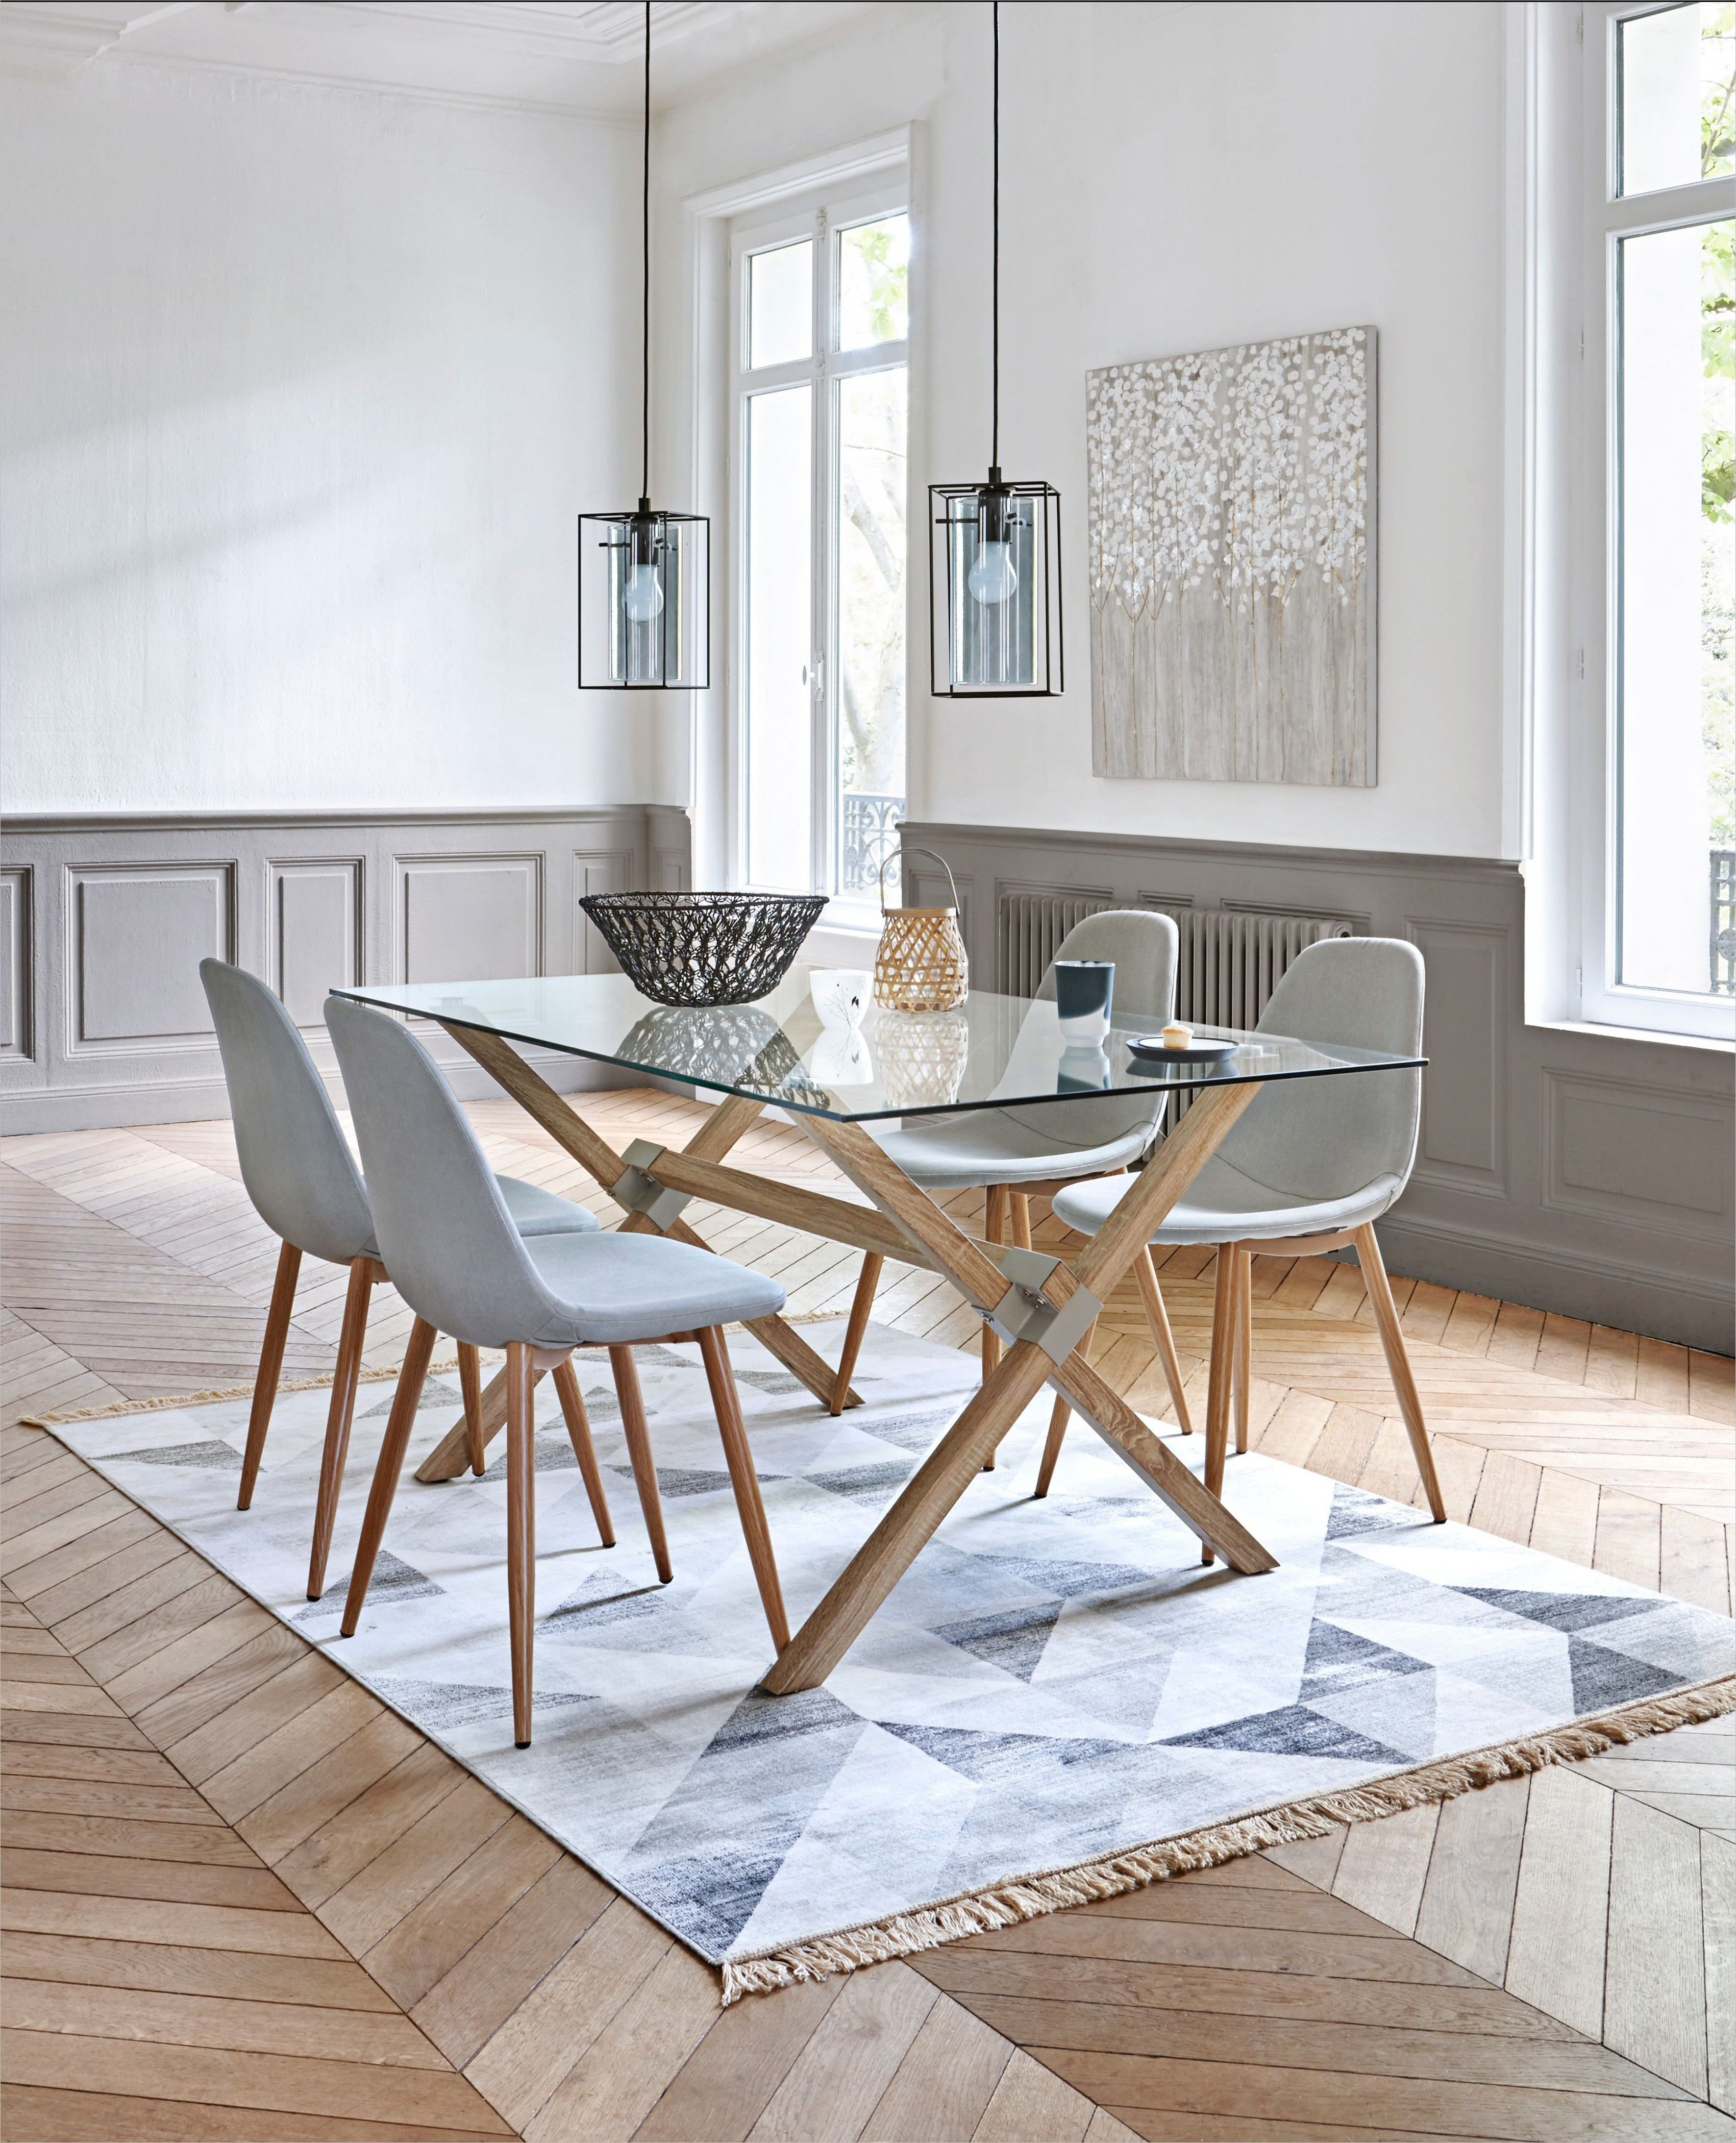 Salle A Manger Deco Scandinave idee deco scandinave salle a manger | white round dining